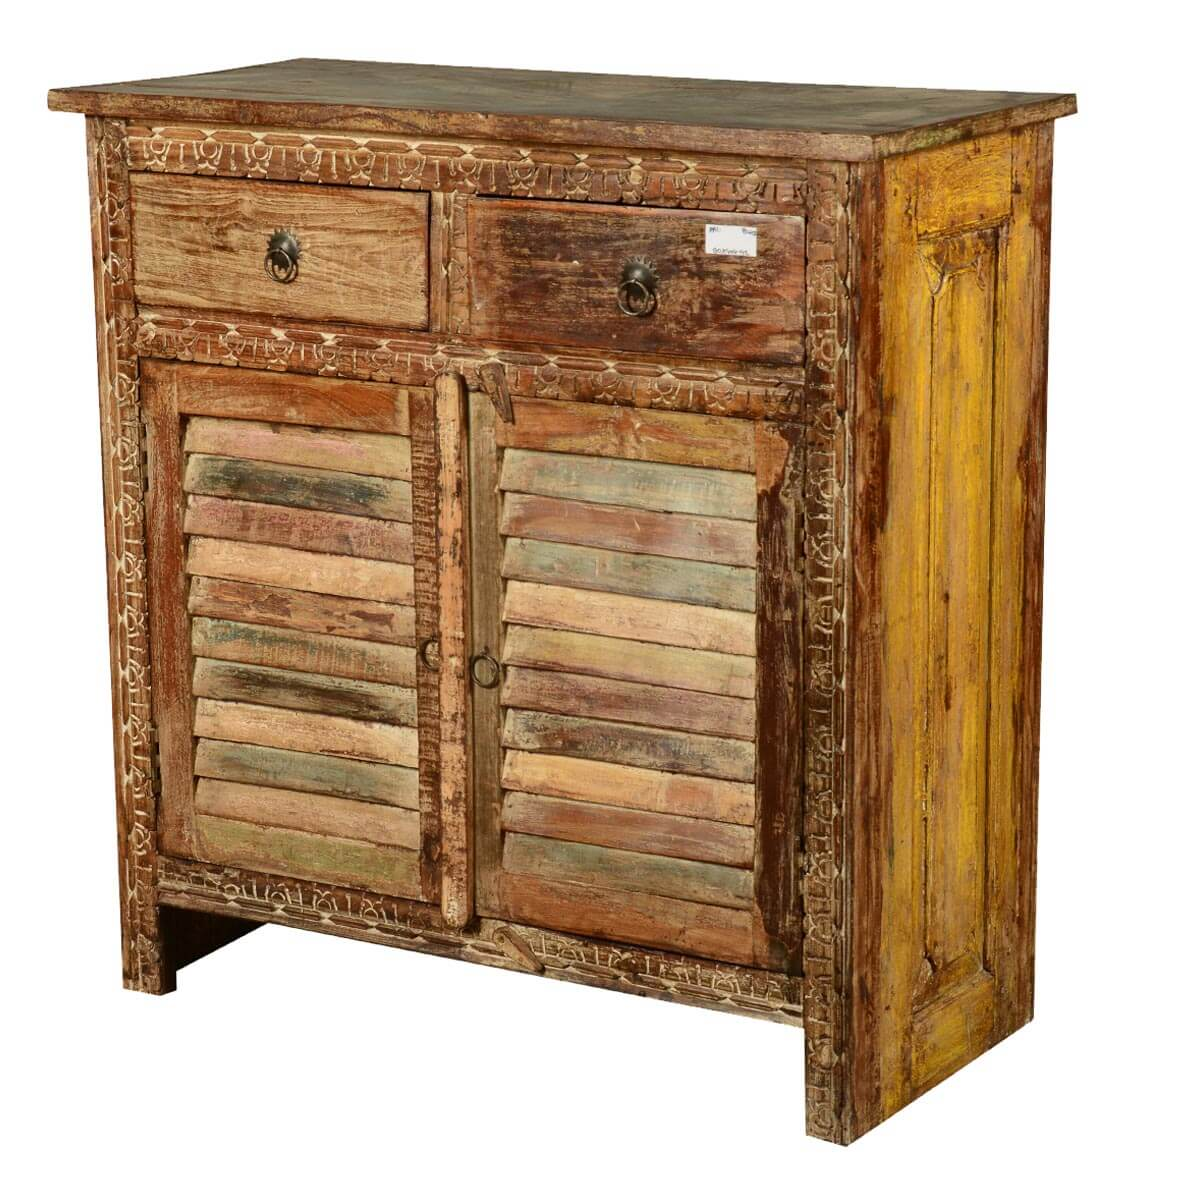 Haledon Distressed Reclaimed Wood 2 Drawer Accent Storage Cabinet